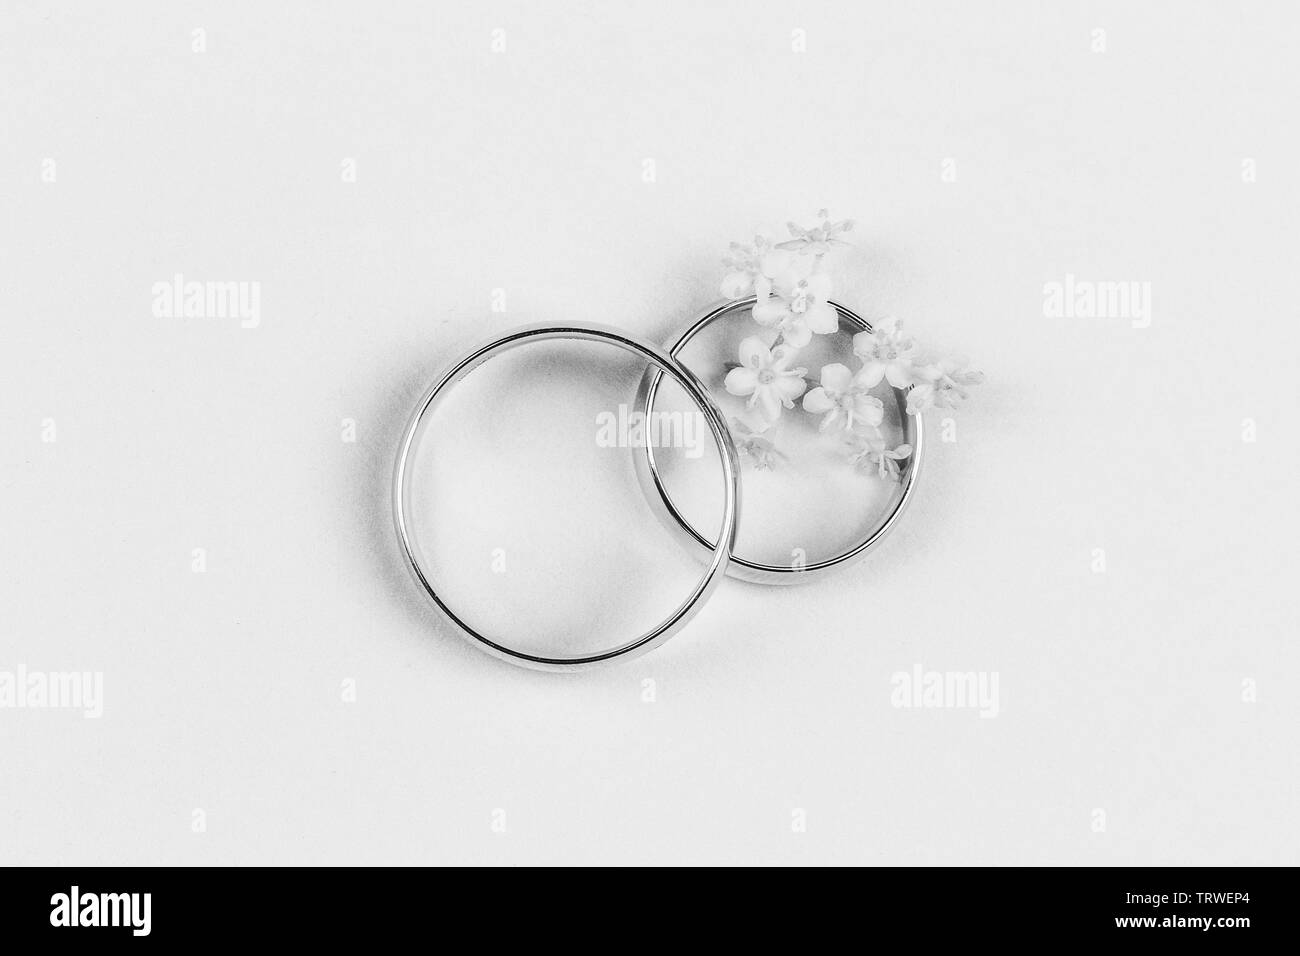 a pair of gold wedding rings and small white flowers in a ring on a white background, top view flat lay, black and white photo - Stock Image